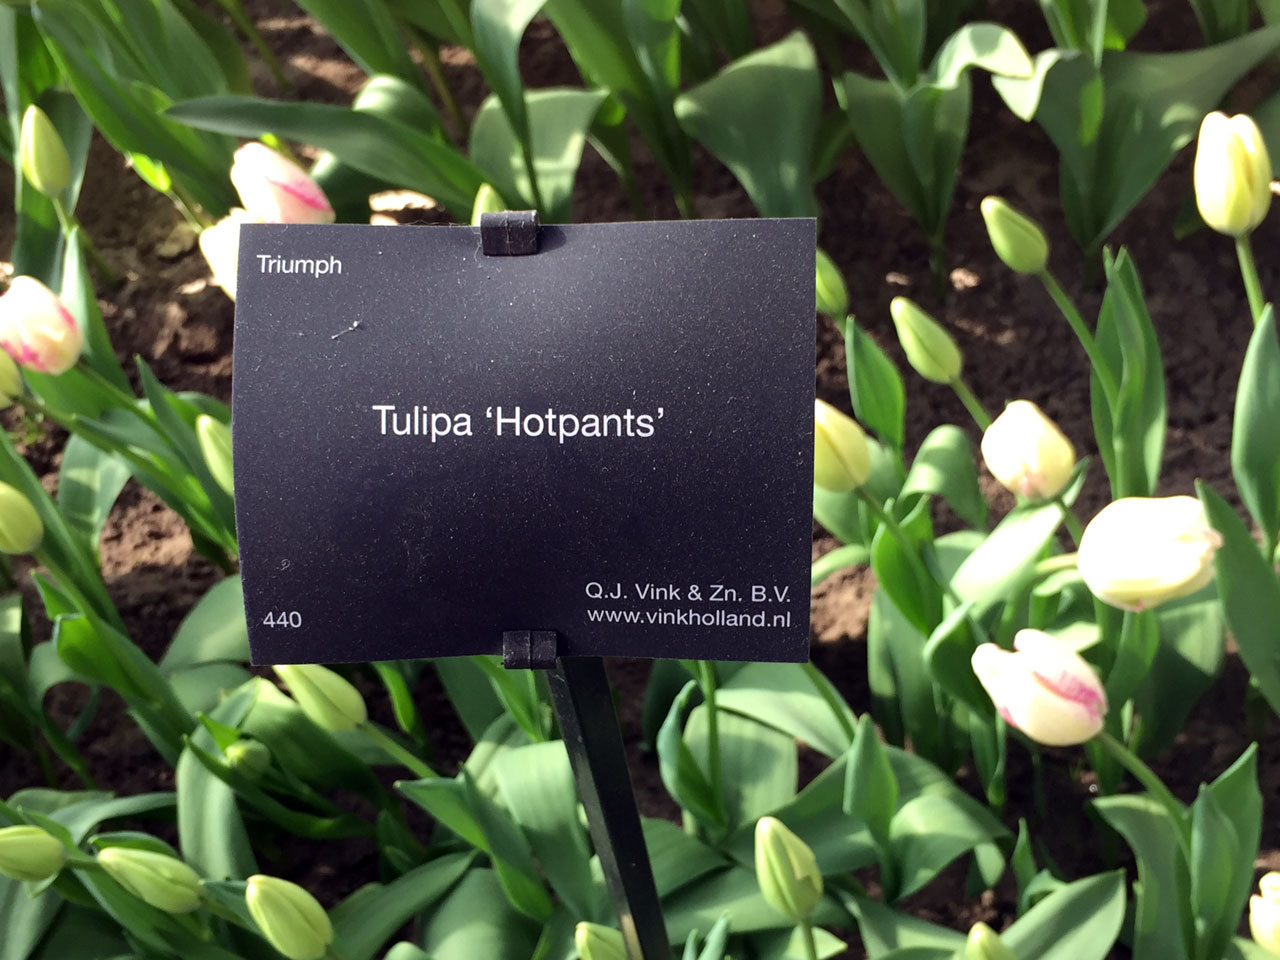 Tulipa 'Hotpants' at Keukenhof gardens, Netherlands